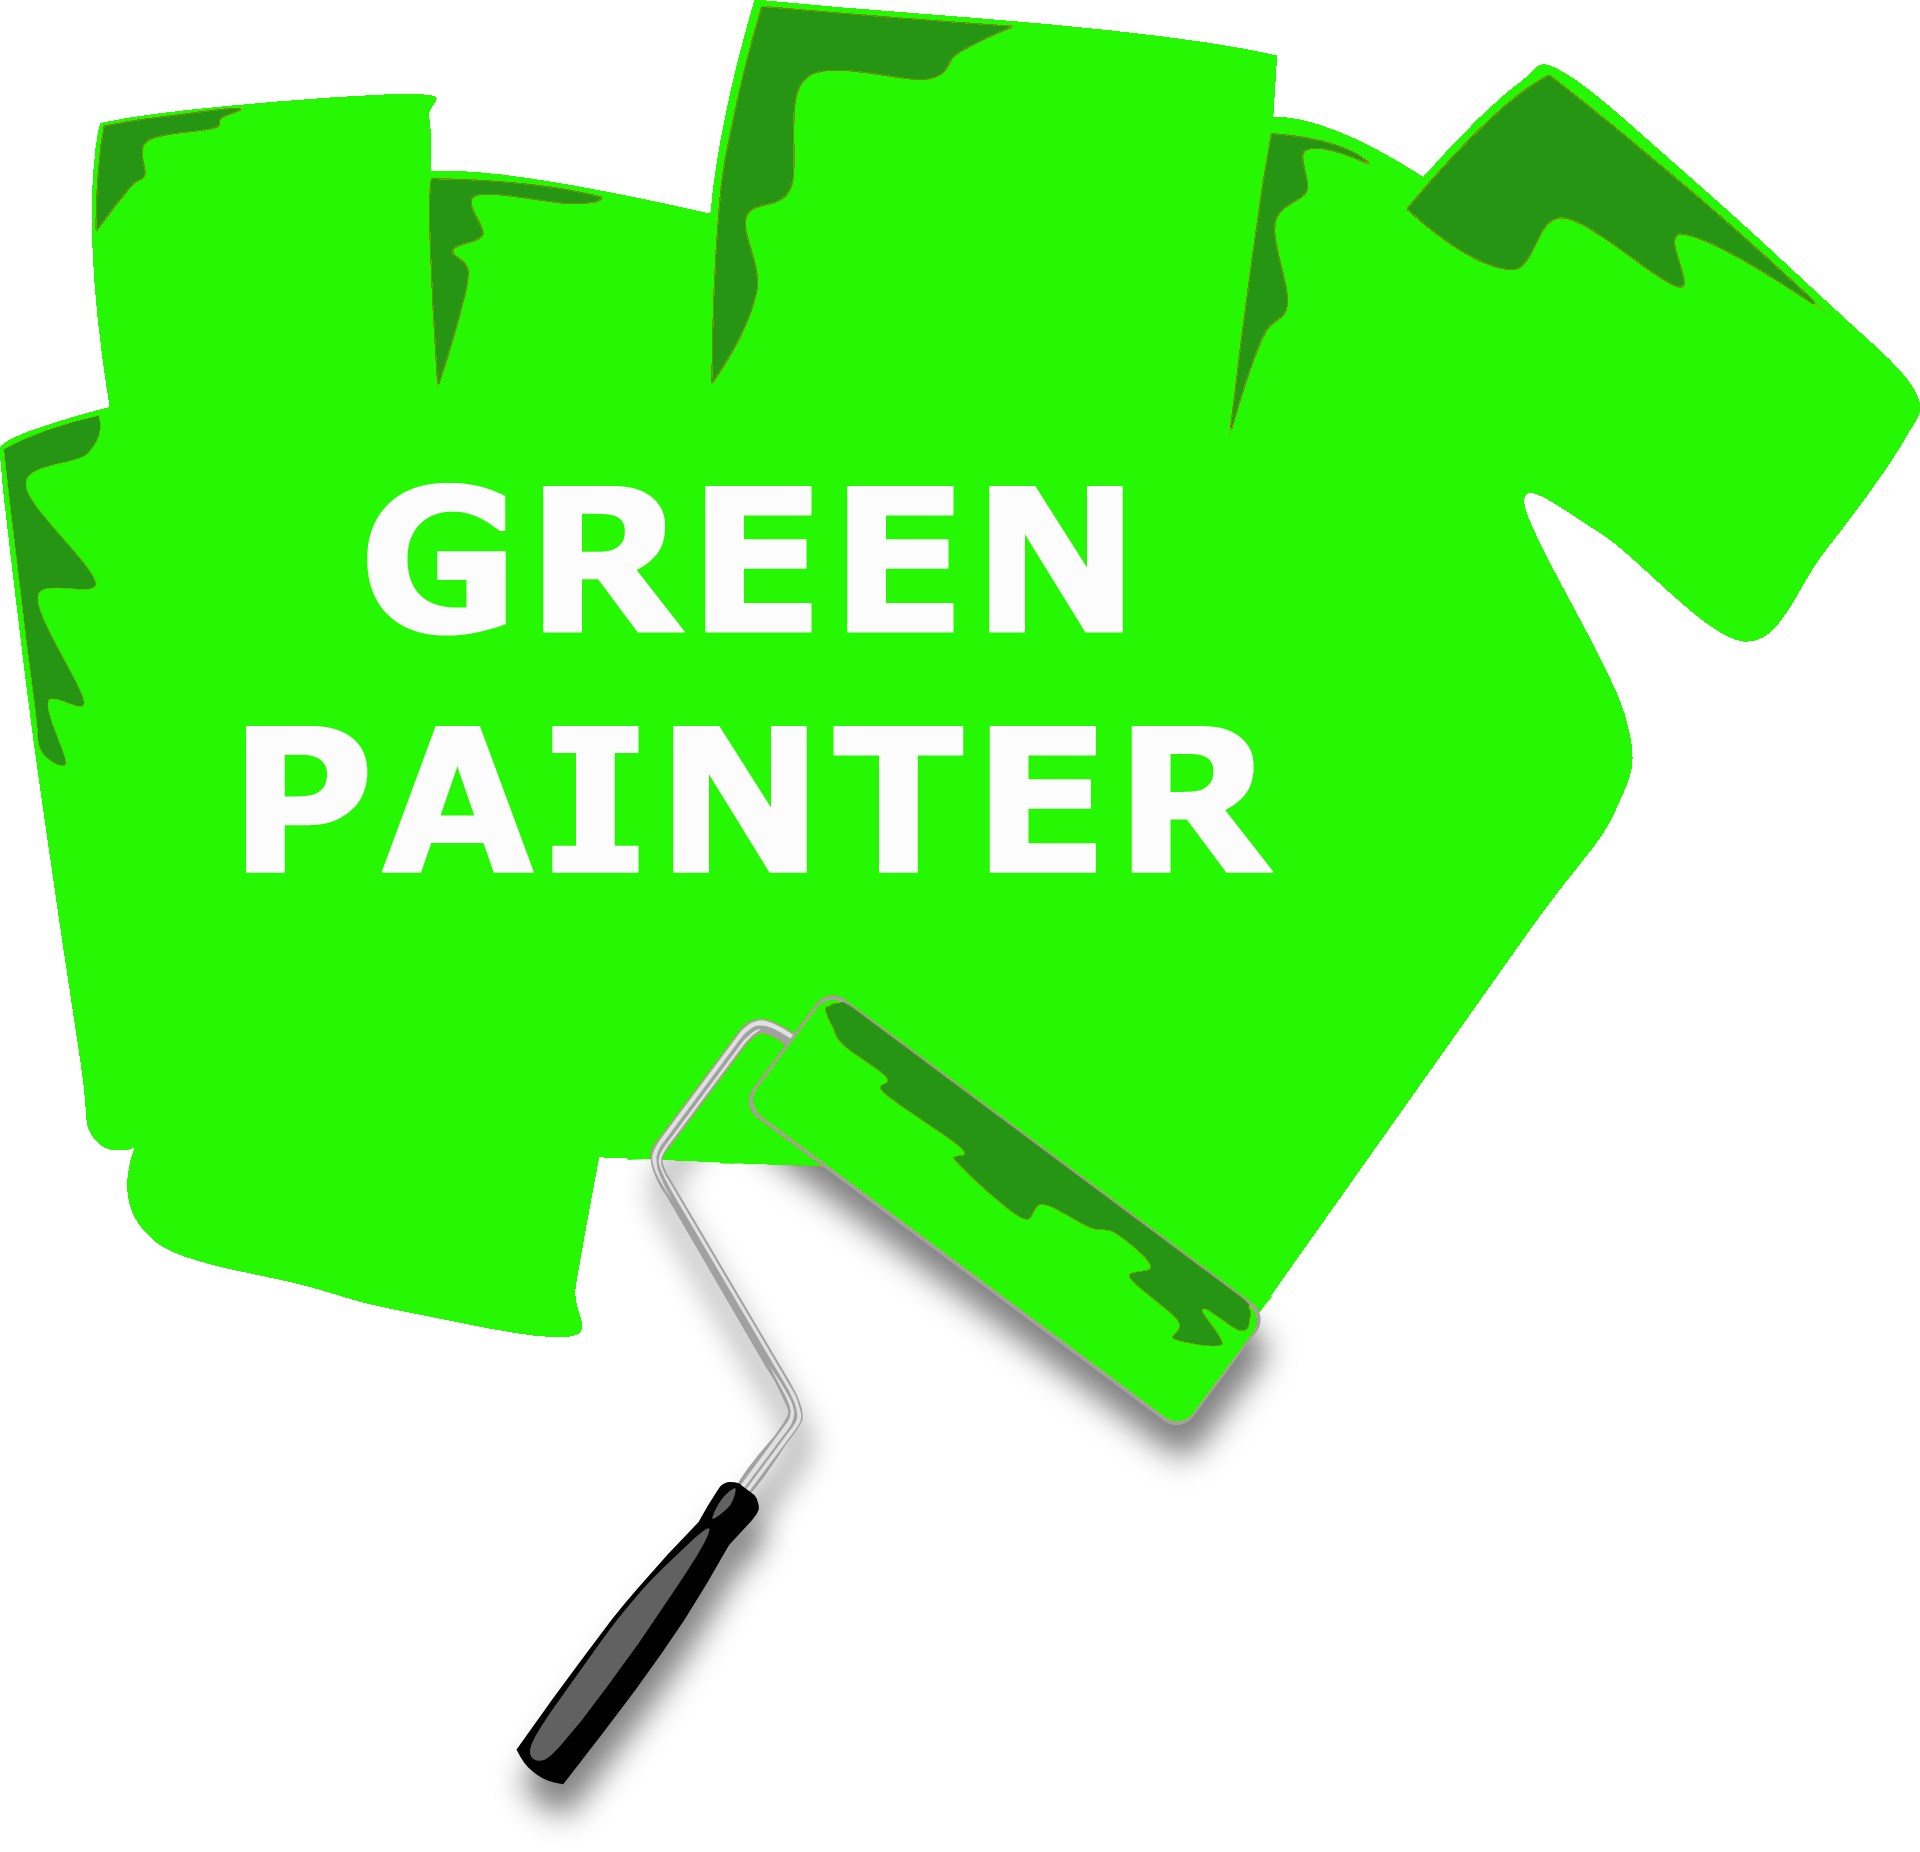 Paint clipart painting room. Abc services accredited green